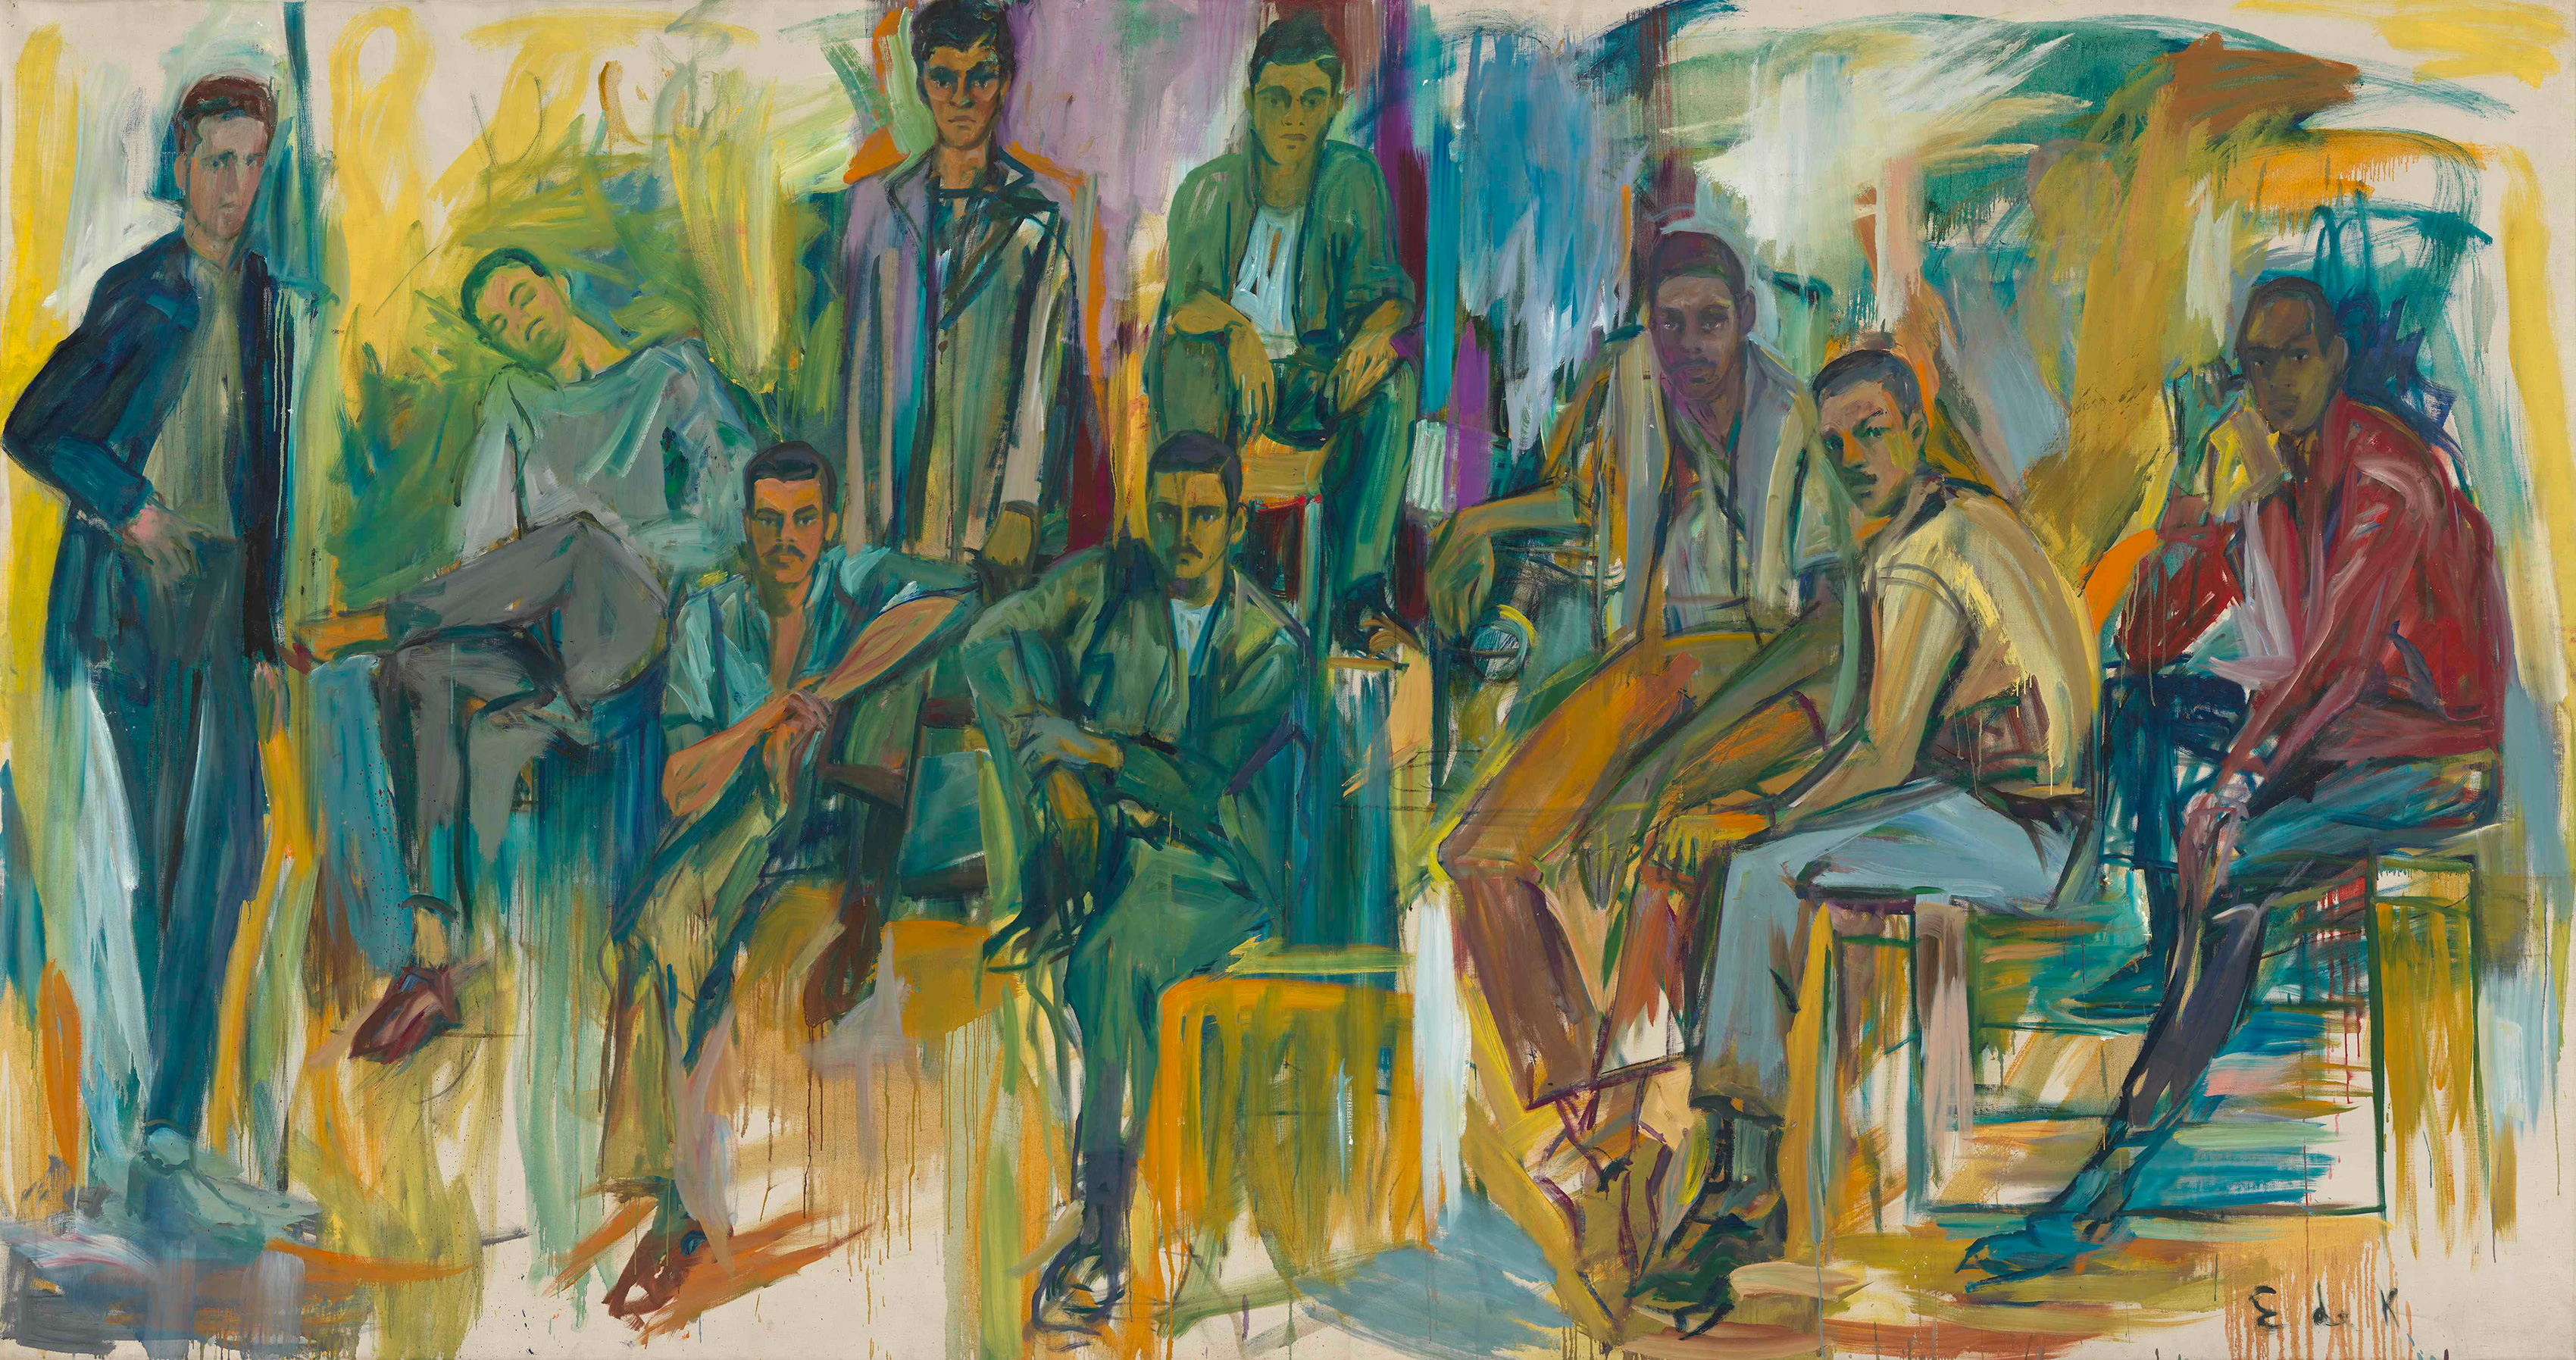 The Burghers of Amsterdam Avenue, 1963 — Elaine de Kooning